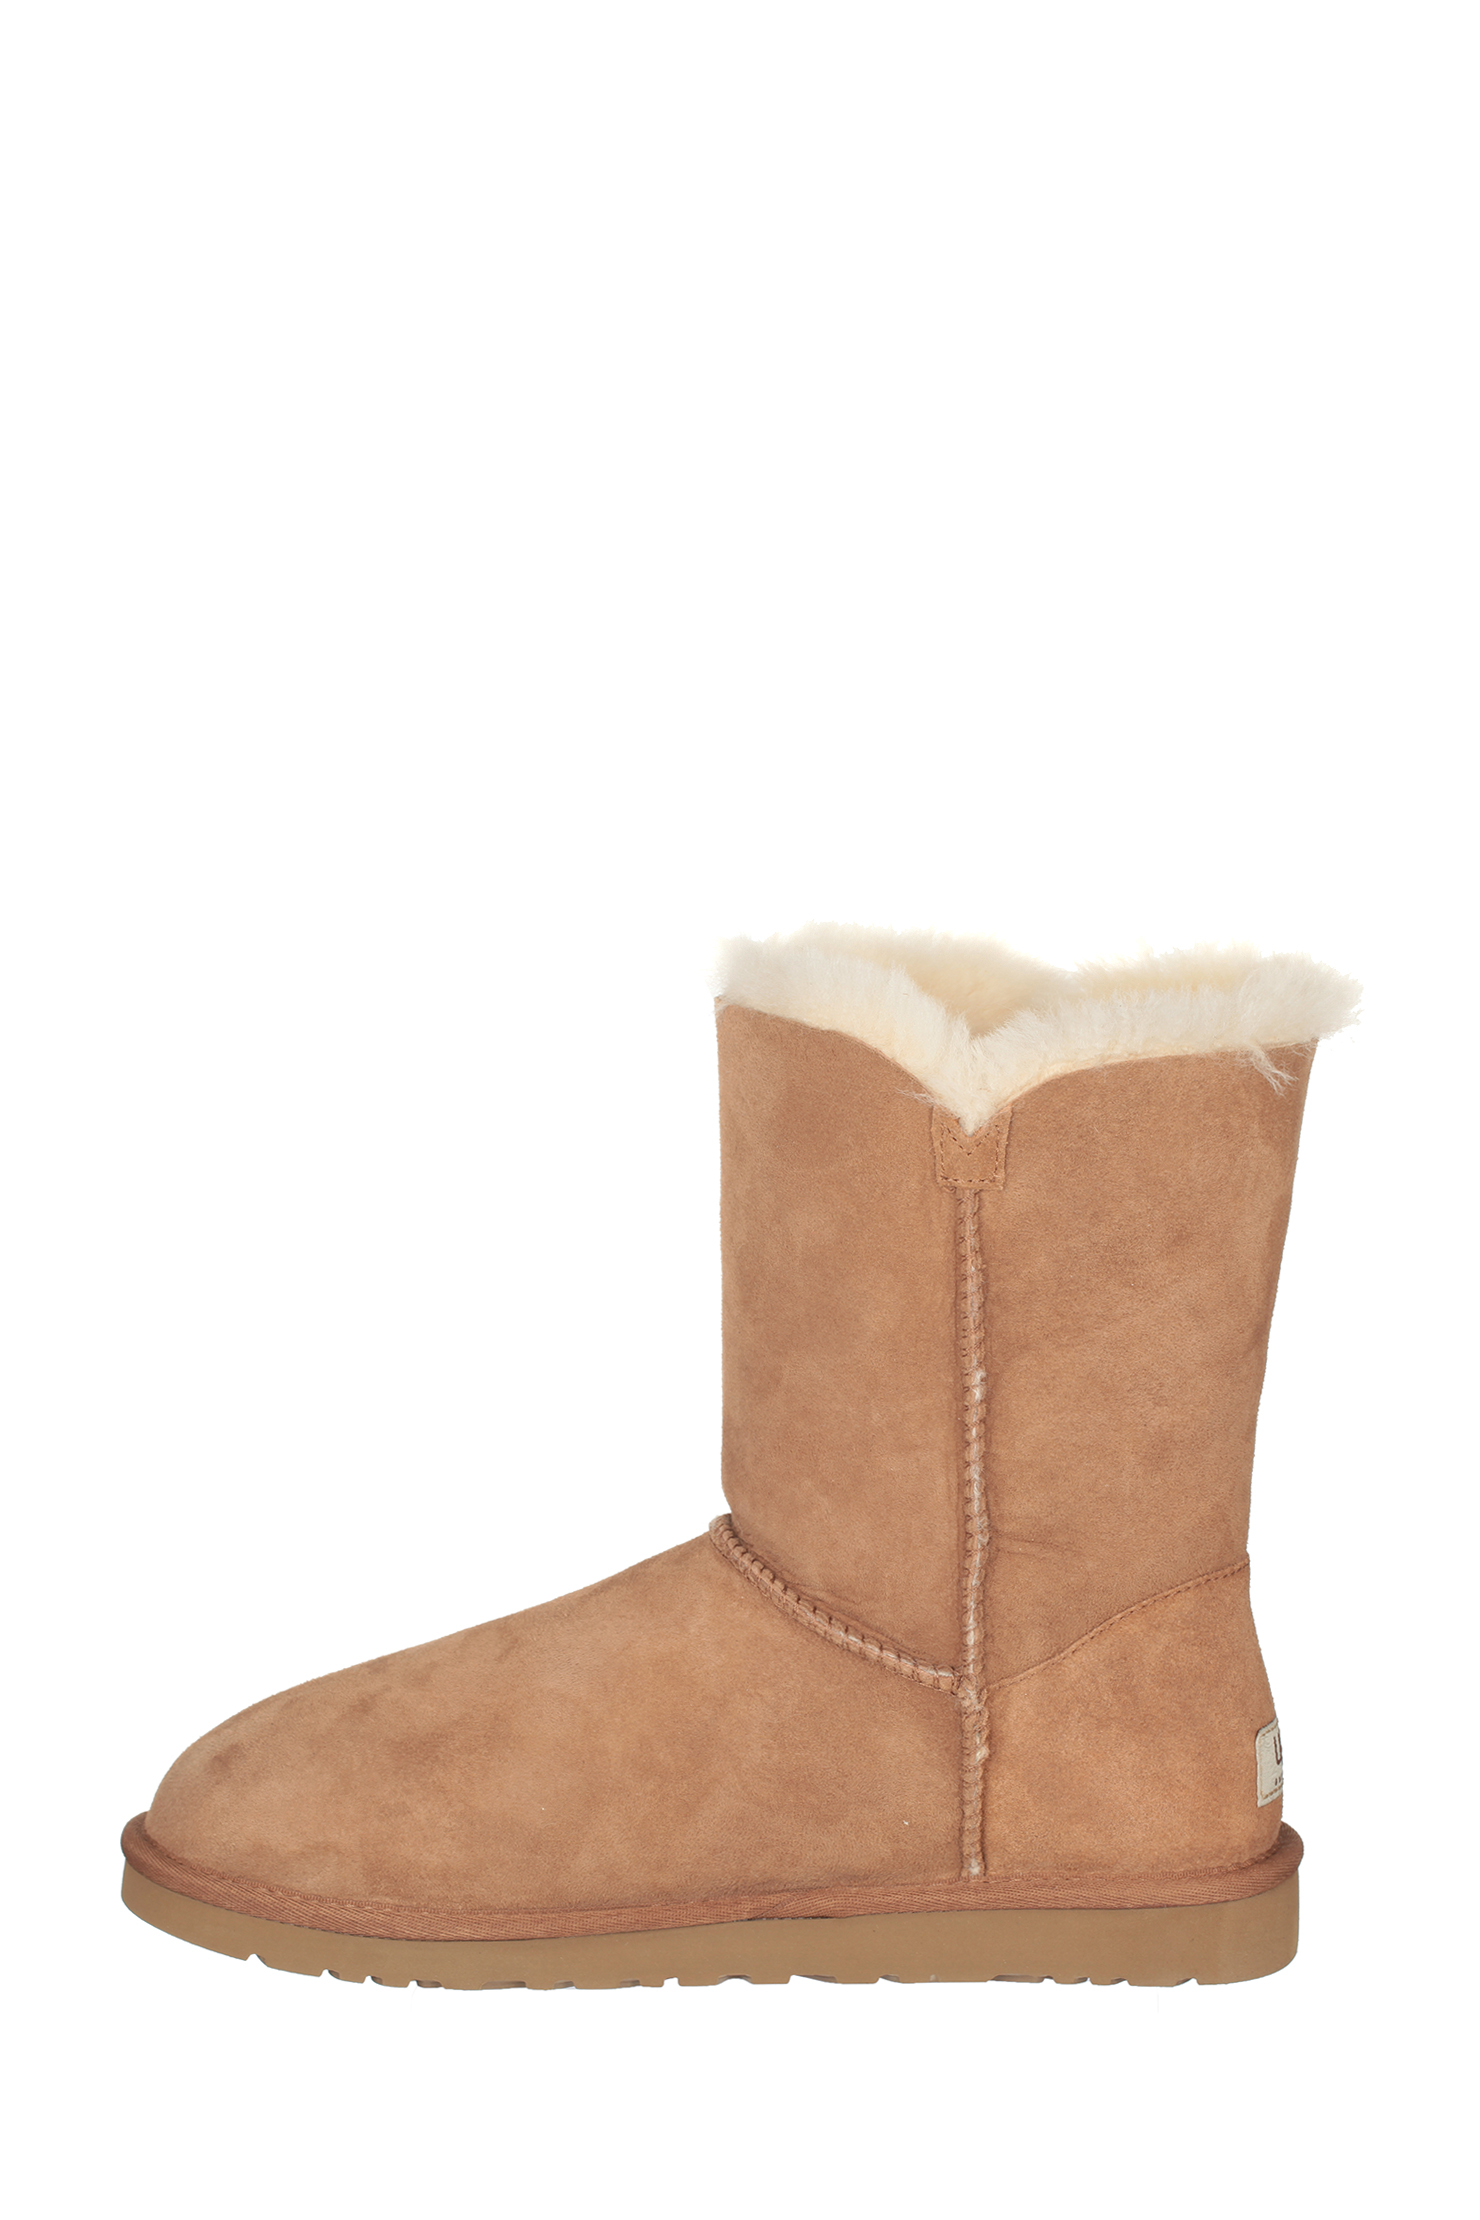 ugg bailey button boots 5803